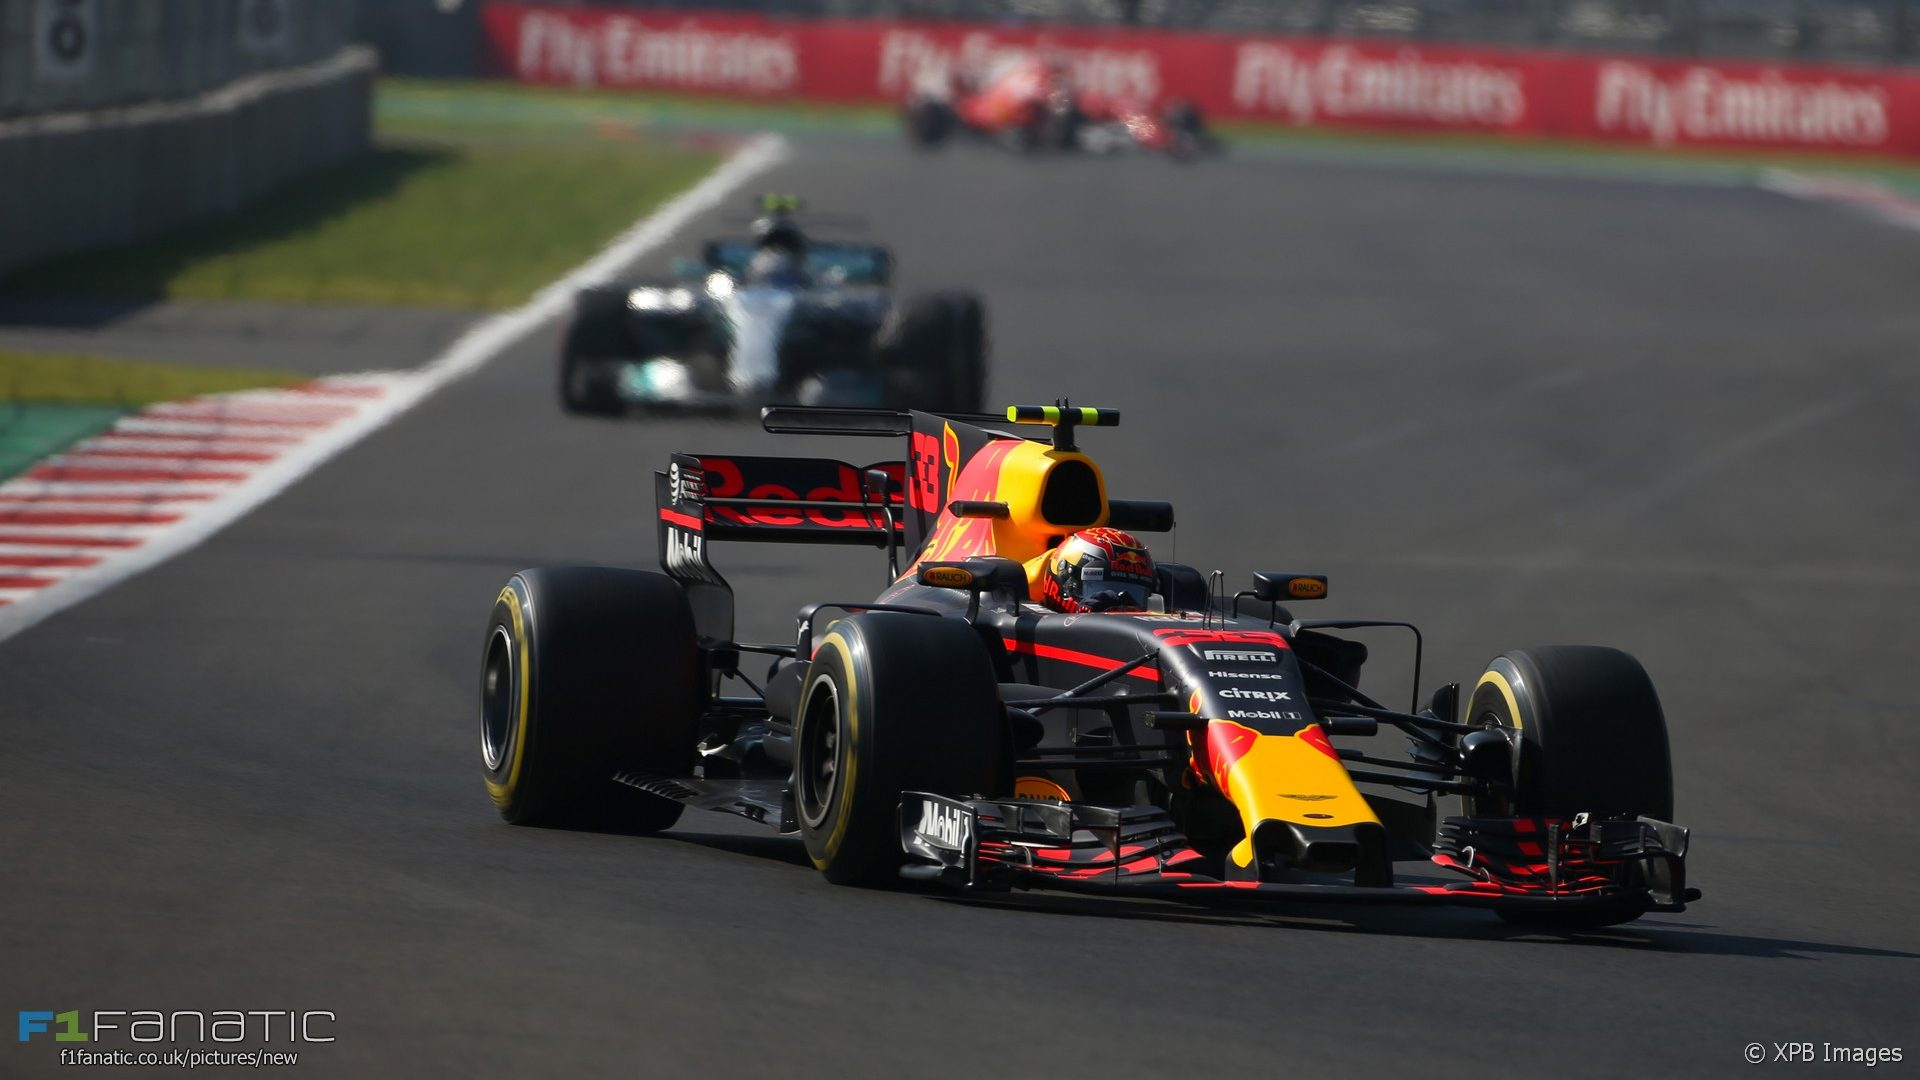 F1 Fanatic round-up: Red Bull were quickest in the last four races